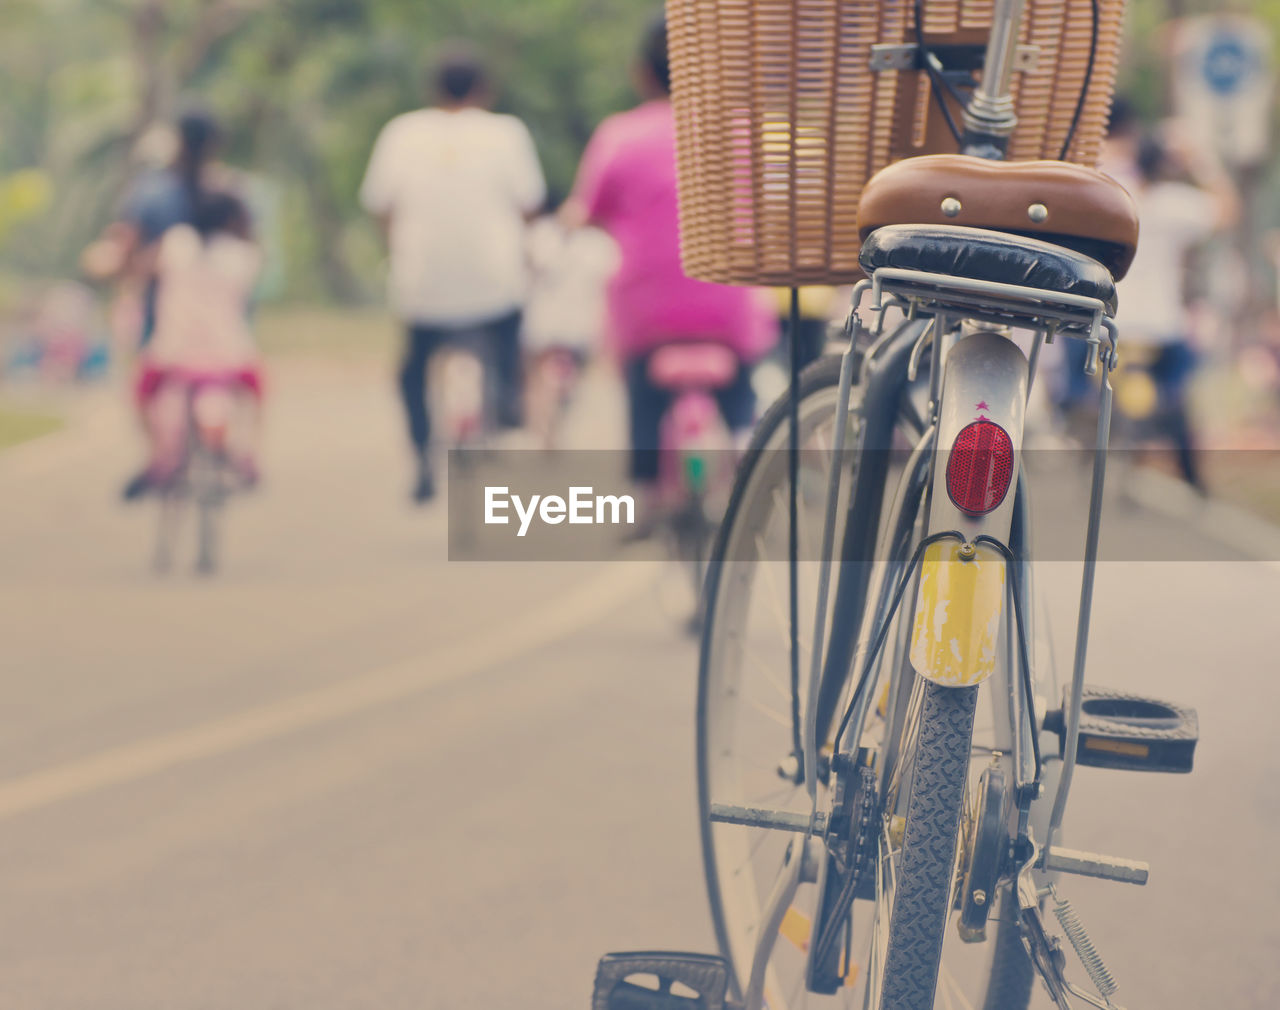 CLOSE-UP OF BICYCLE ON ROAD WITH CITY IN BACKGROUND